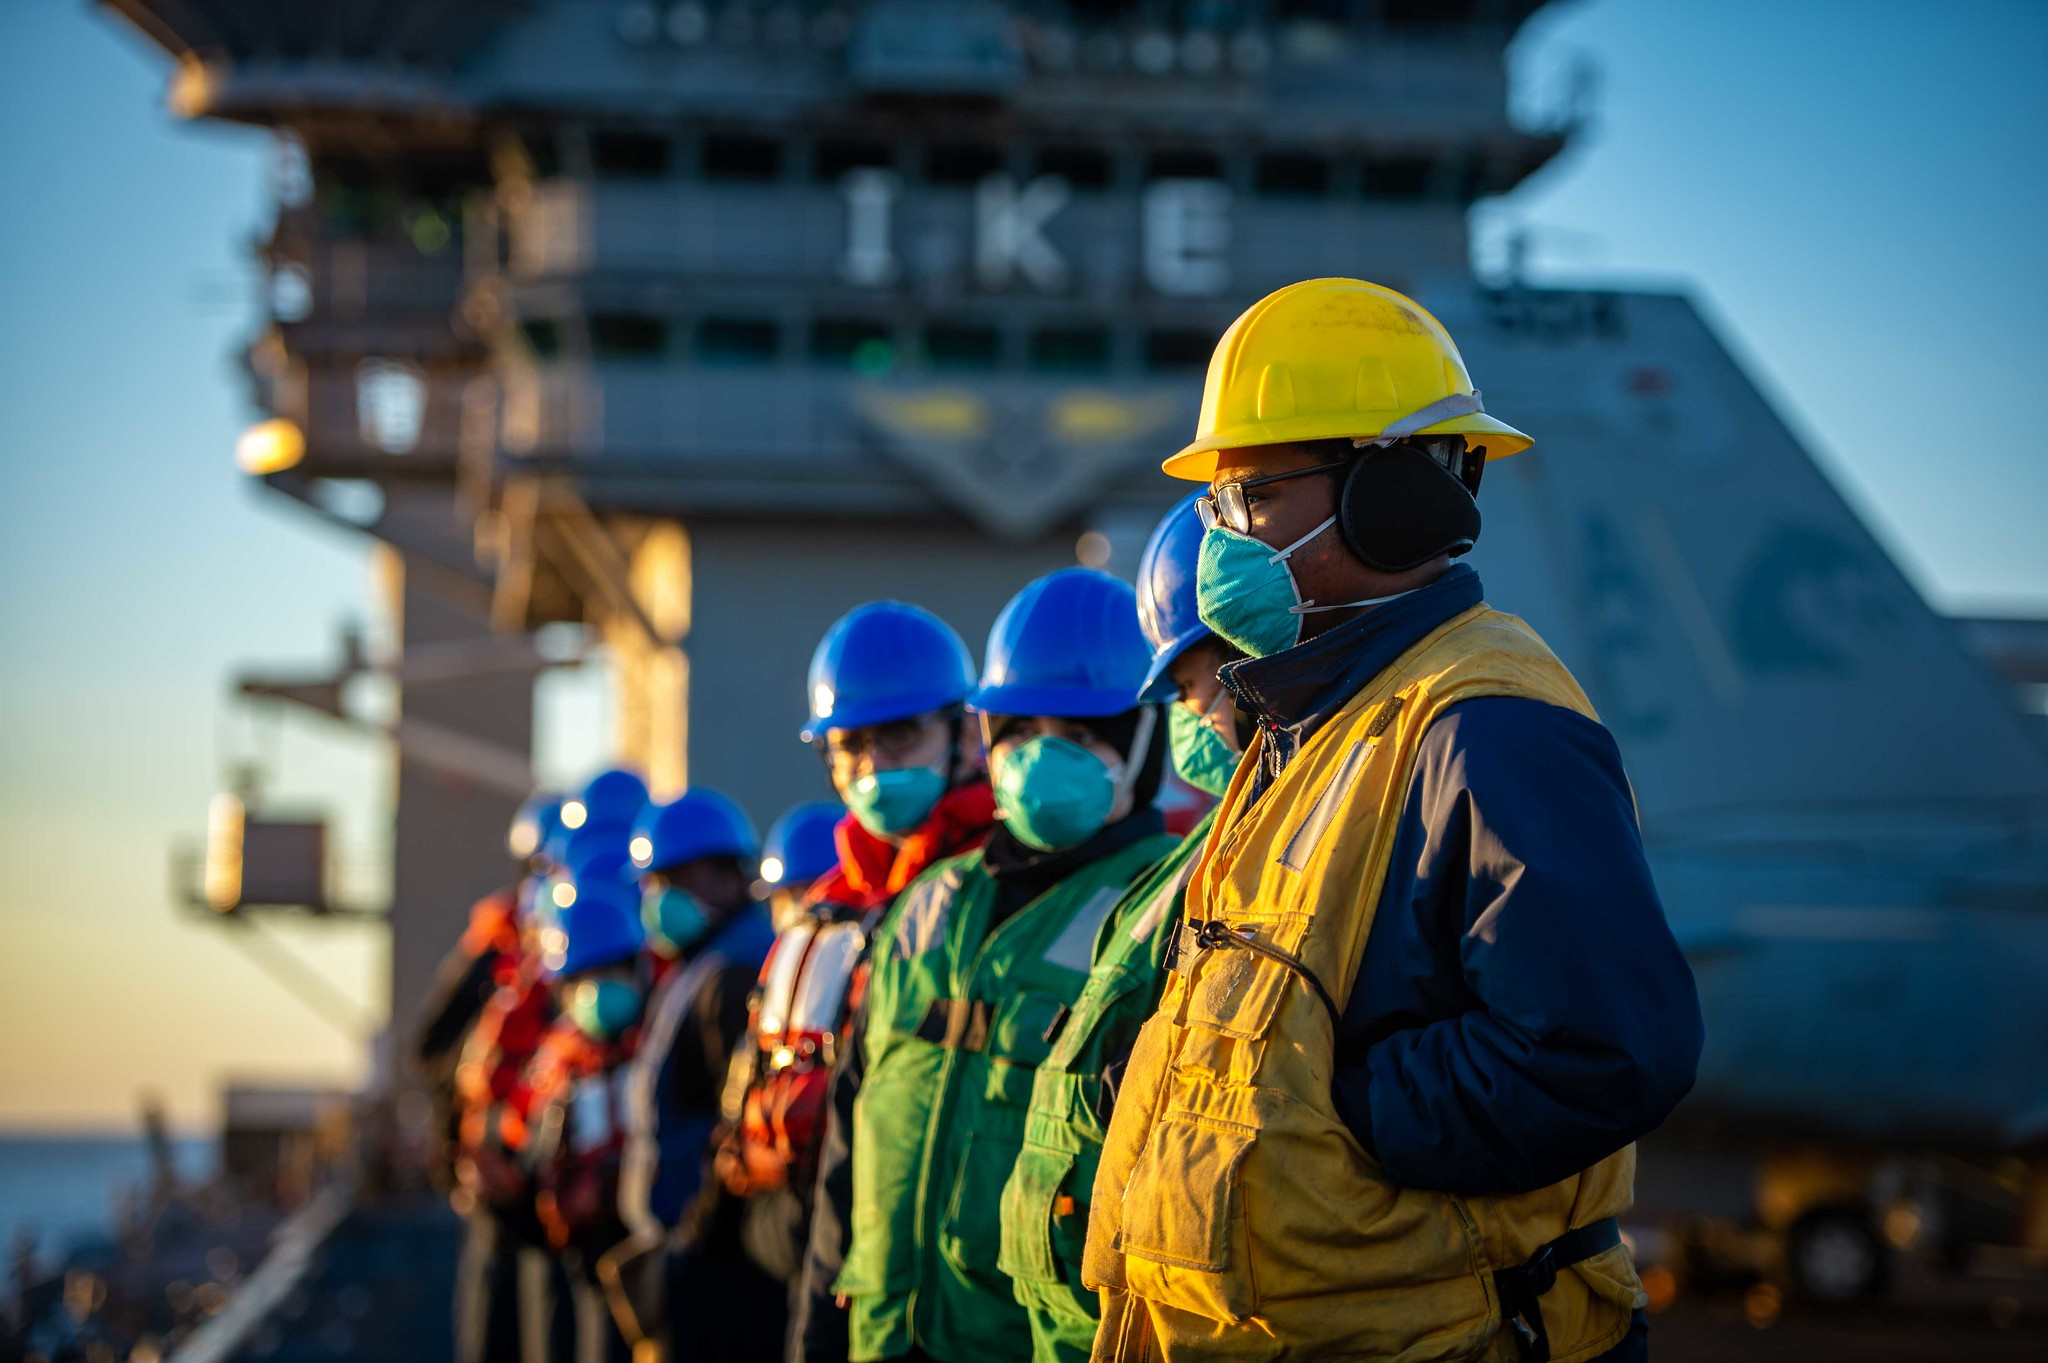 Sailors prepare for a replenishment-at-sea on Feb. 4, 2021, with the fleet-replenishment oiler USNS Kanawha (T-AO 196) onboard the Nimitz-class aircraft carrier USS Dwight D. Eisenhower (CVN 69) in the Atlantic Ocean. (Mass Communication Specialist Seaman Apprentice Mo Bourdi/Navy)